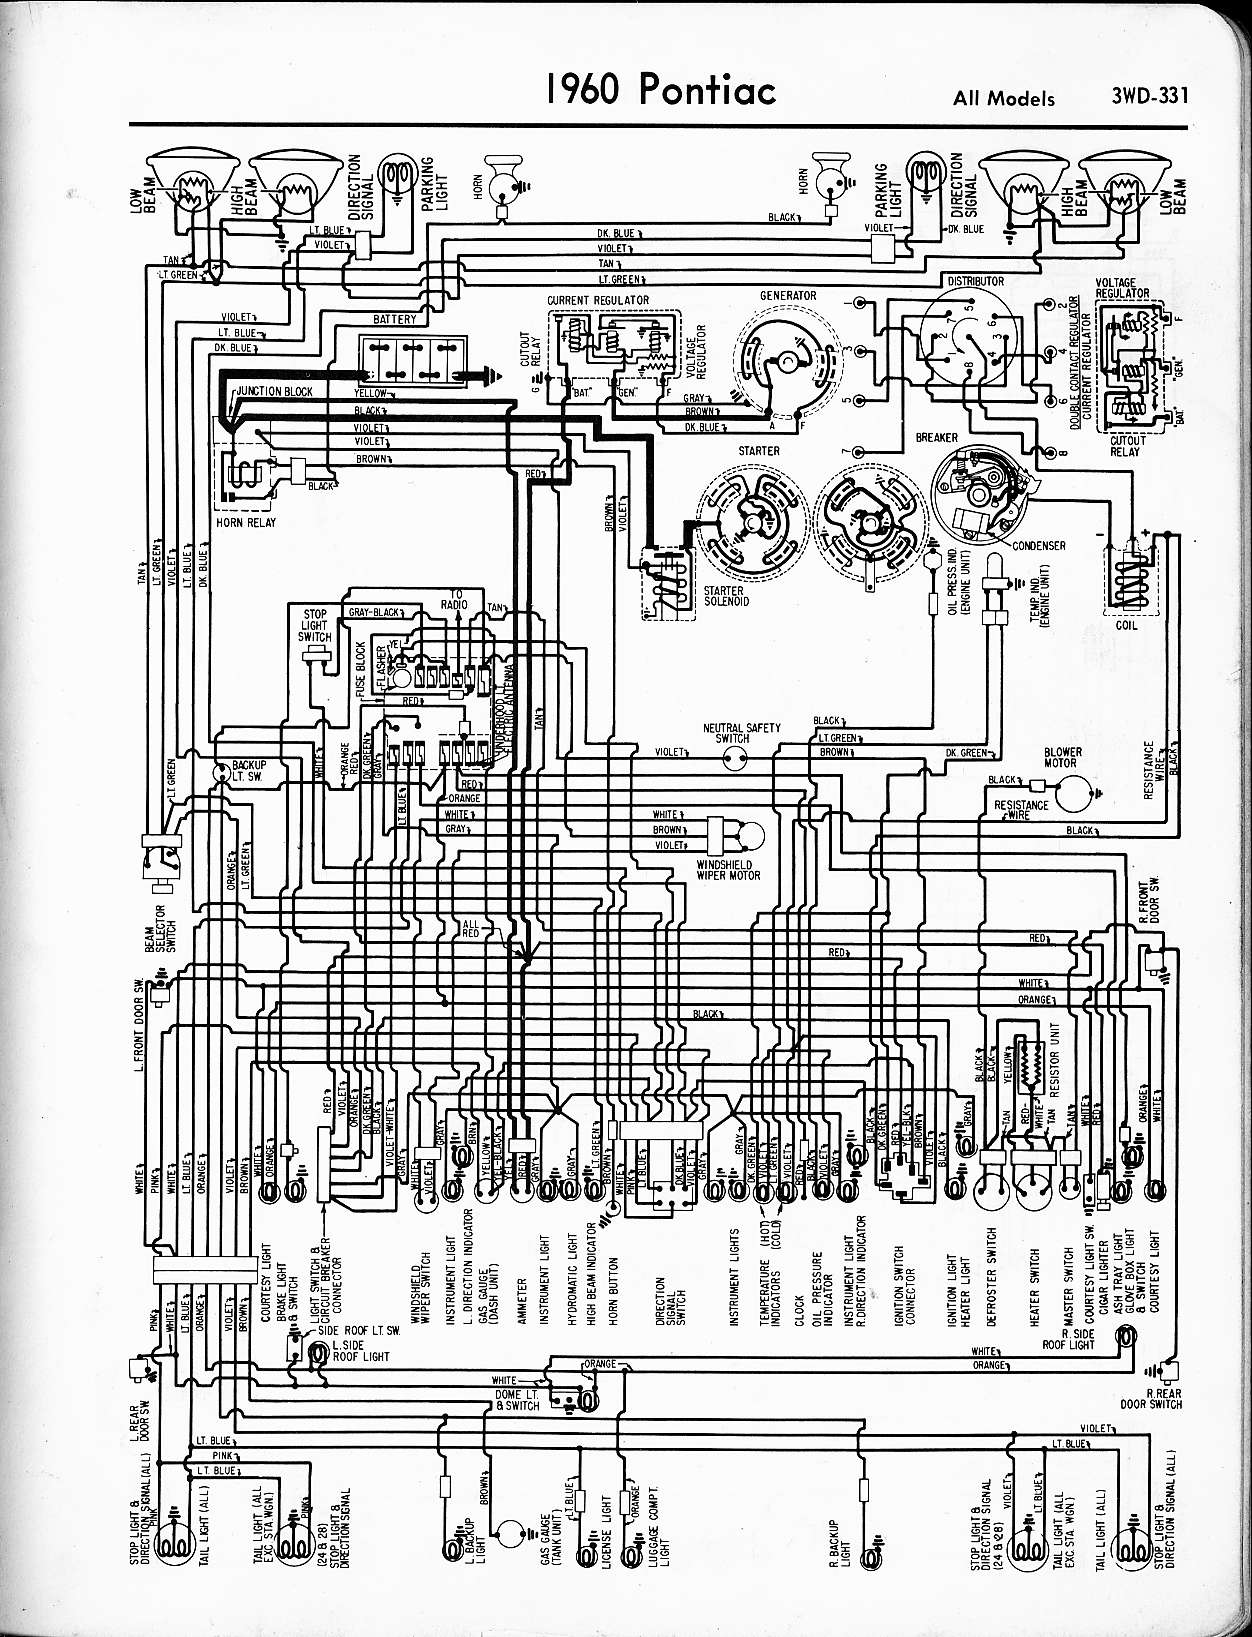 Gto Wiring Diagram - Wiring Diagram Progresif on 1965 pontiac grand prix wiring diagram, 1965 ford falcon wiring diagram, 1973 ford mustang wiring diagram, 2006 ford econoline fuse box diagram, 1965 ford mustang wiring diagram, 1995 ford bronco engine diagram, 1965 chevrolet pickup wiring diagram, 1995 ford truck wiring diagram, 1965 ford f150 wiring diagram, 1963 ford falcon wiring diagram, 1977 ford f-150 wiring diagram, 1965 ford ranchero wiring diagram, 1978 ford bronco wiring diagram, 1987 ford bronco wiring diagram, 1965 ford f100 wiring diagram, 1965 ford thunderbird wiring diagram, 1965 ford galaxie wiring diagram, 1965 ford f350 wiring diagram, 1965 chevrolet impala wiring diagram, 1969 chevy camaro wiring diagram,